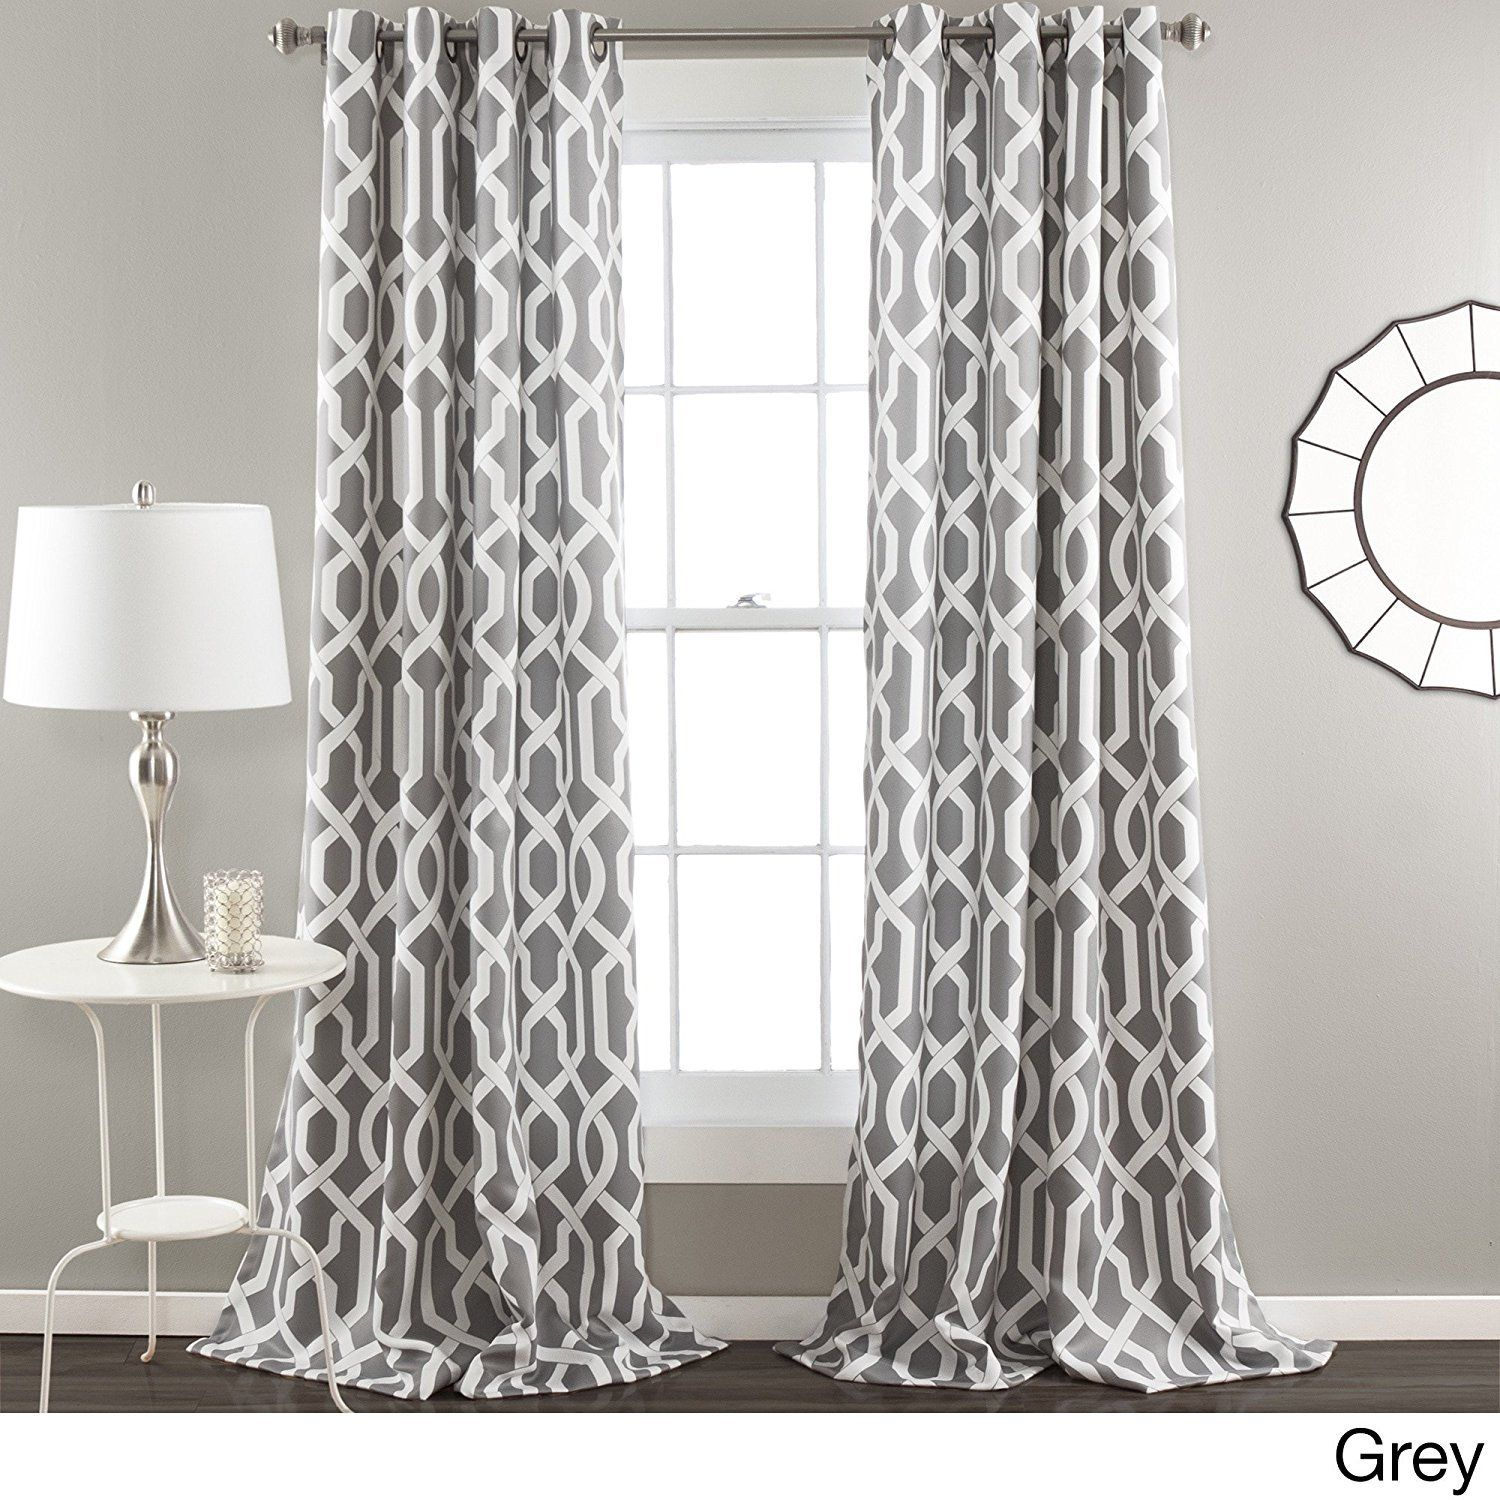 about best curtains grey the on curtain panels club drapes majestic ideas bosli looking geometric